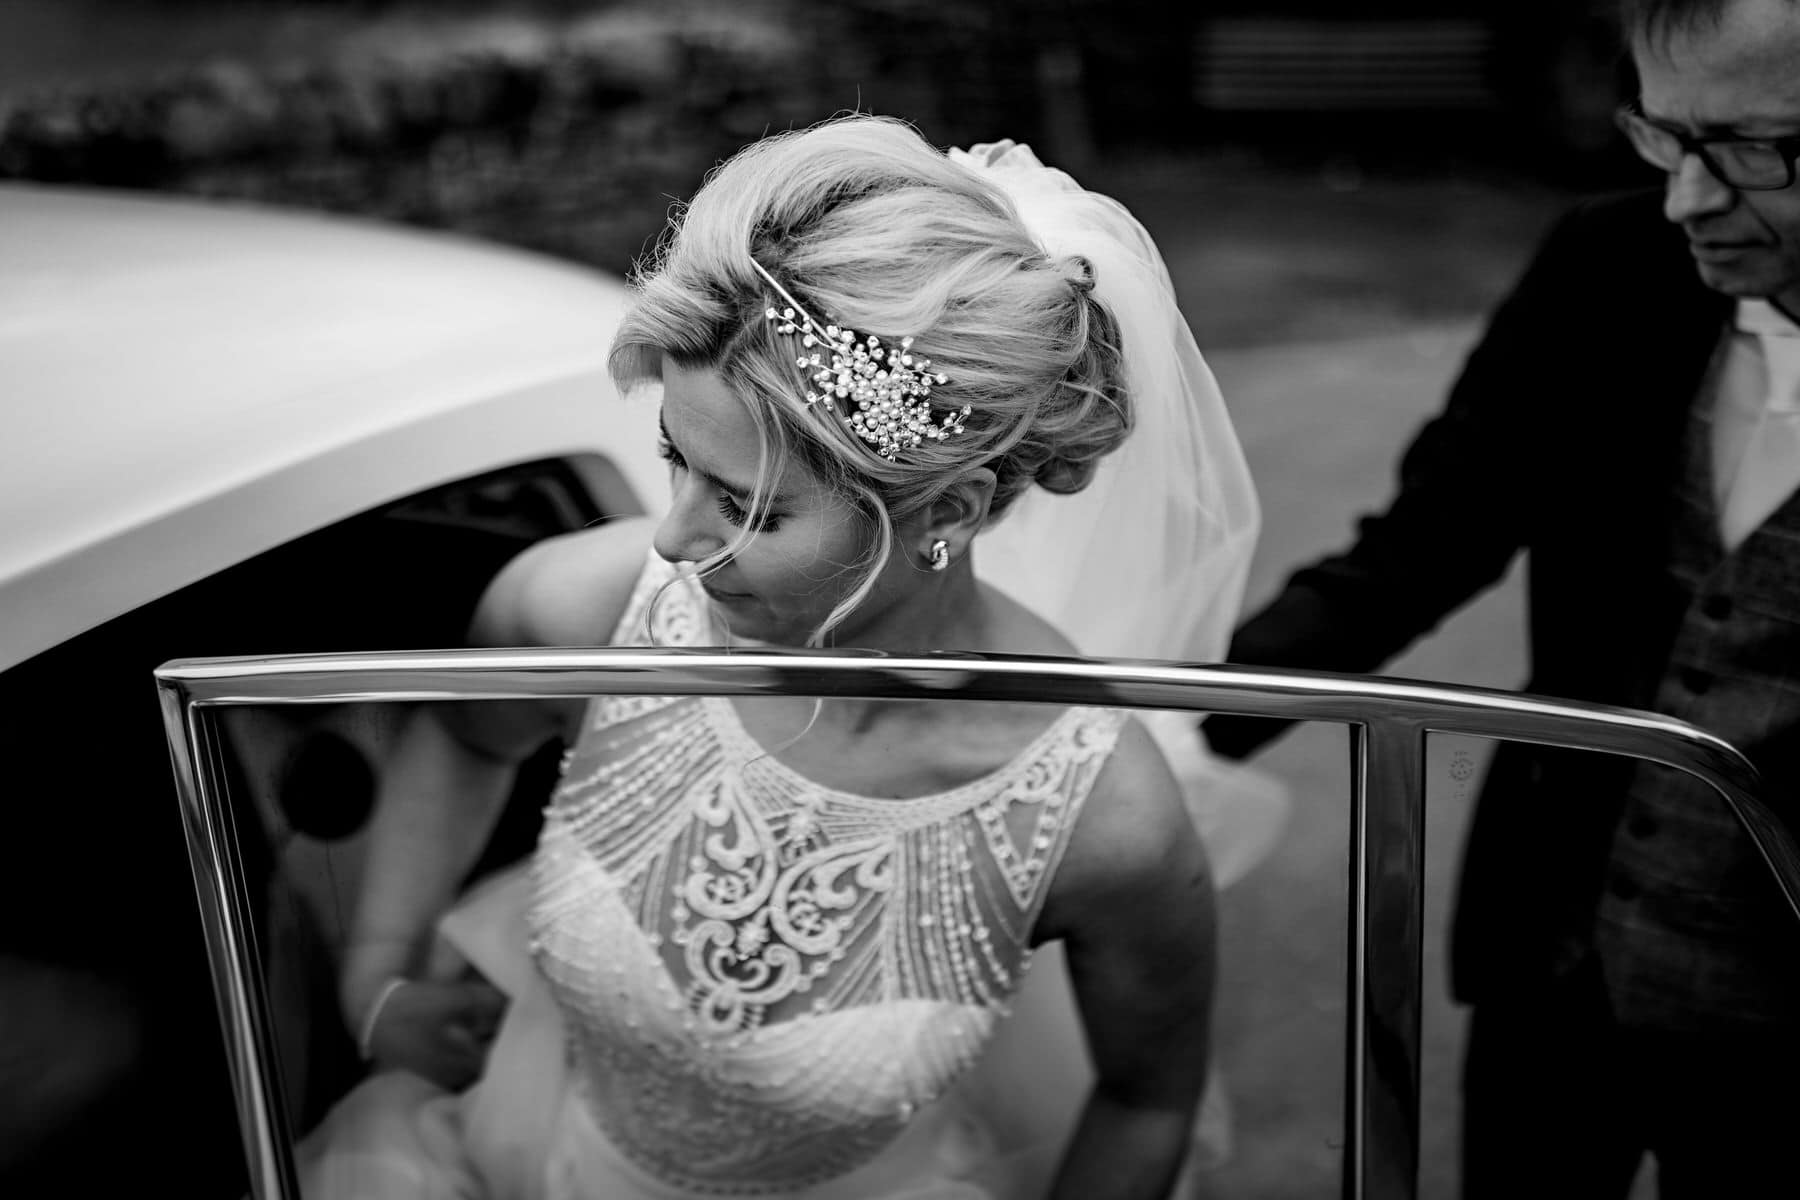 the bride arriving at The west mill in the wedding car